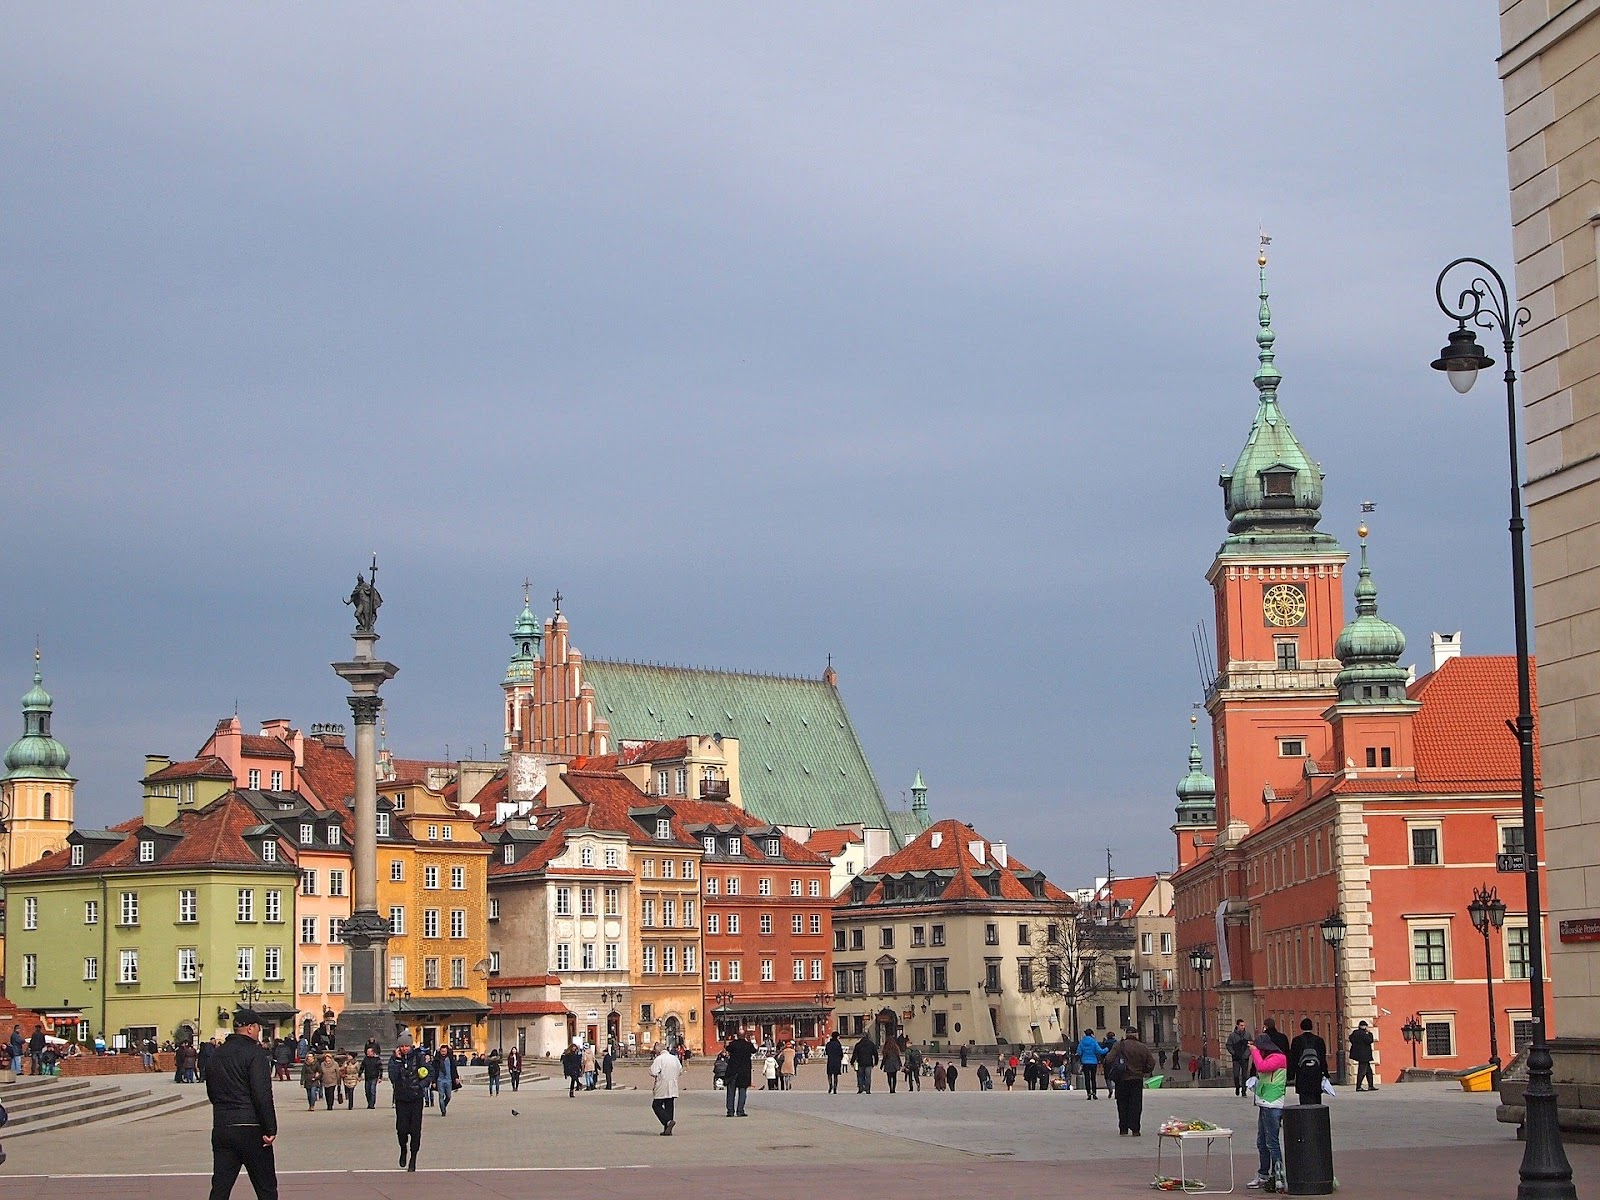 warsaw old town medieval buildings royal castle zygmunt column people poland